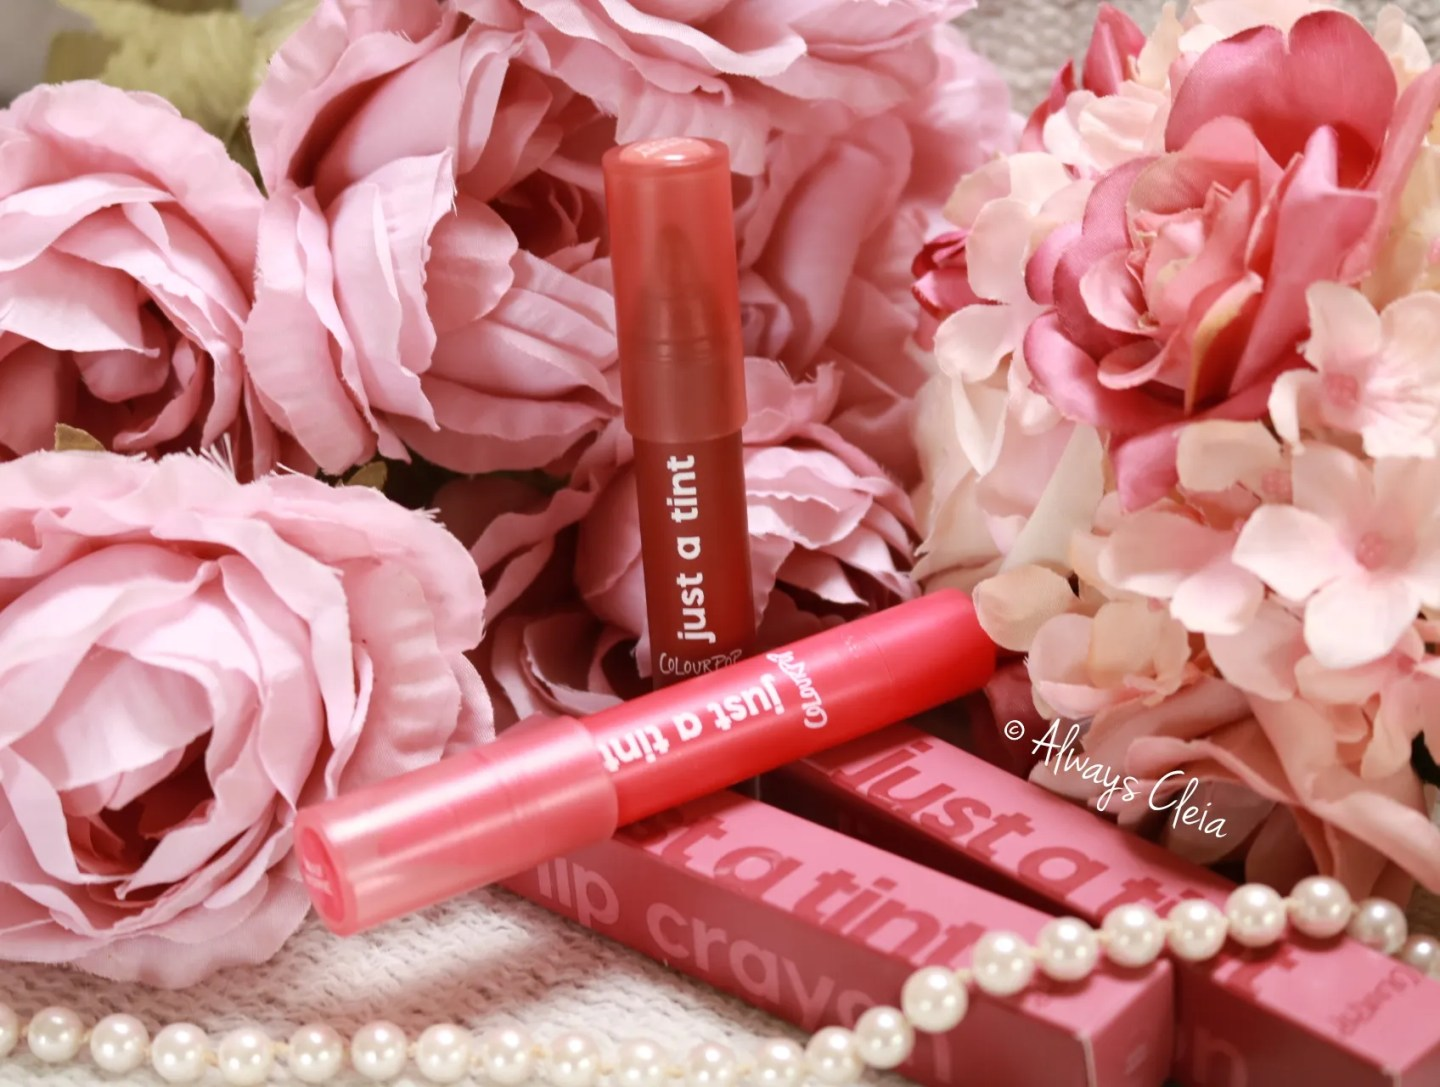 Just A Tint Lippie Tint Reviews